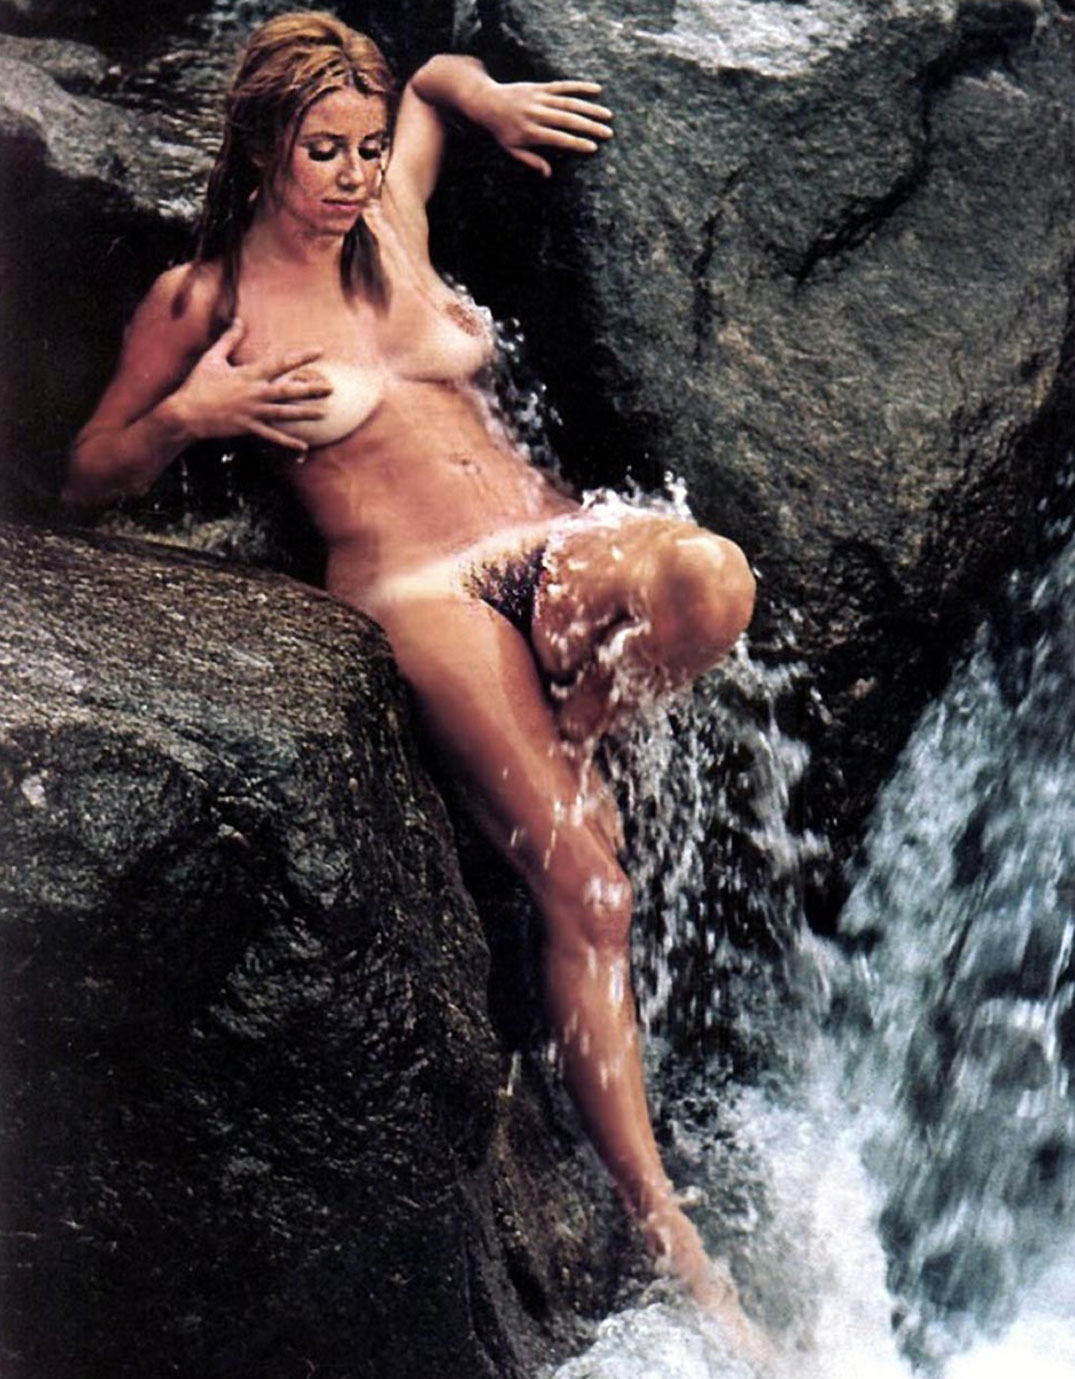 Suzanne somers naked photos